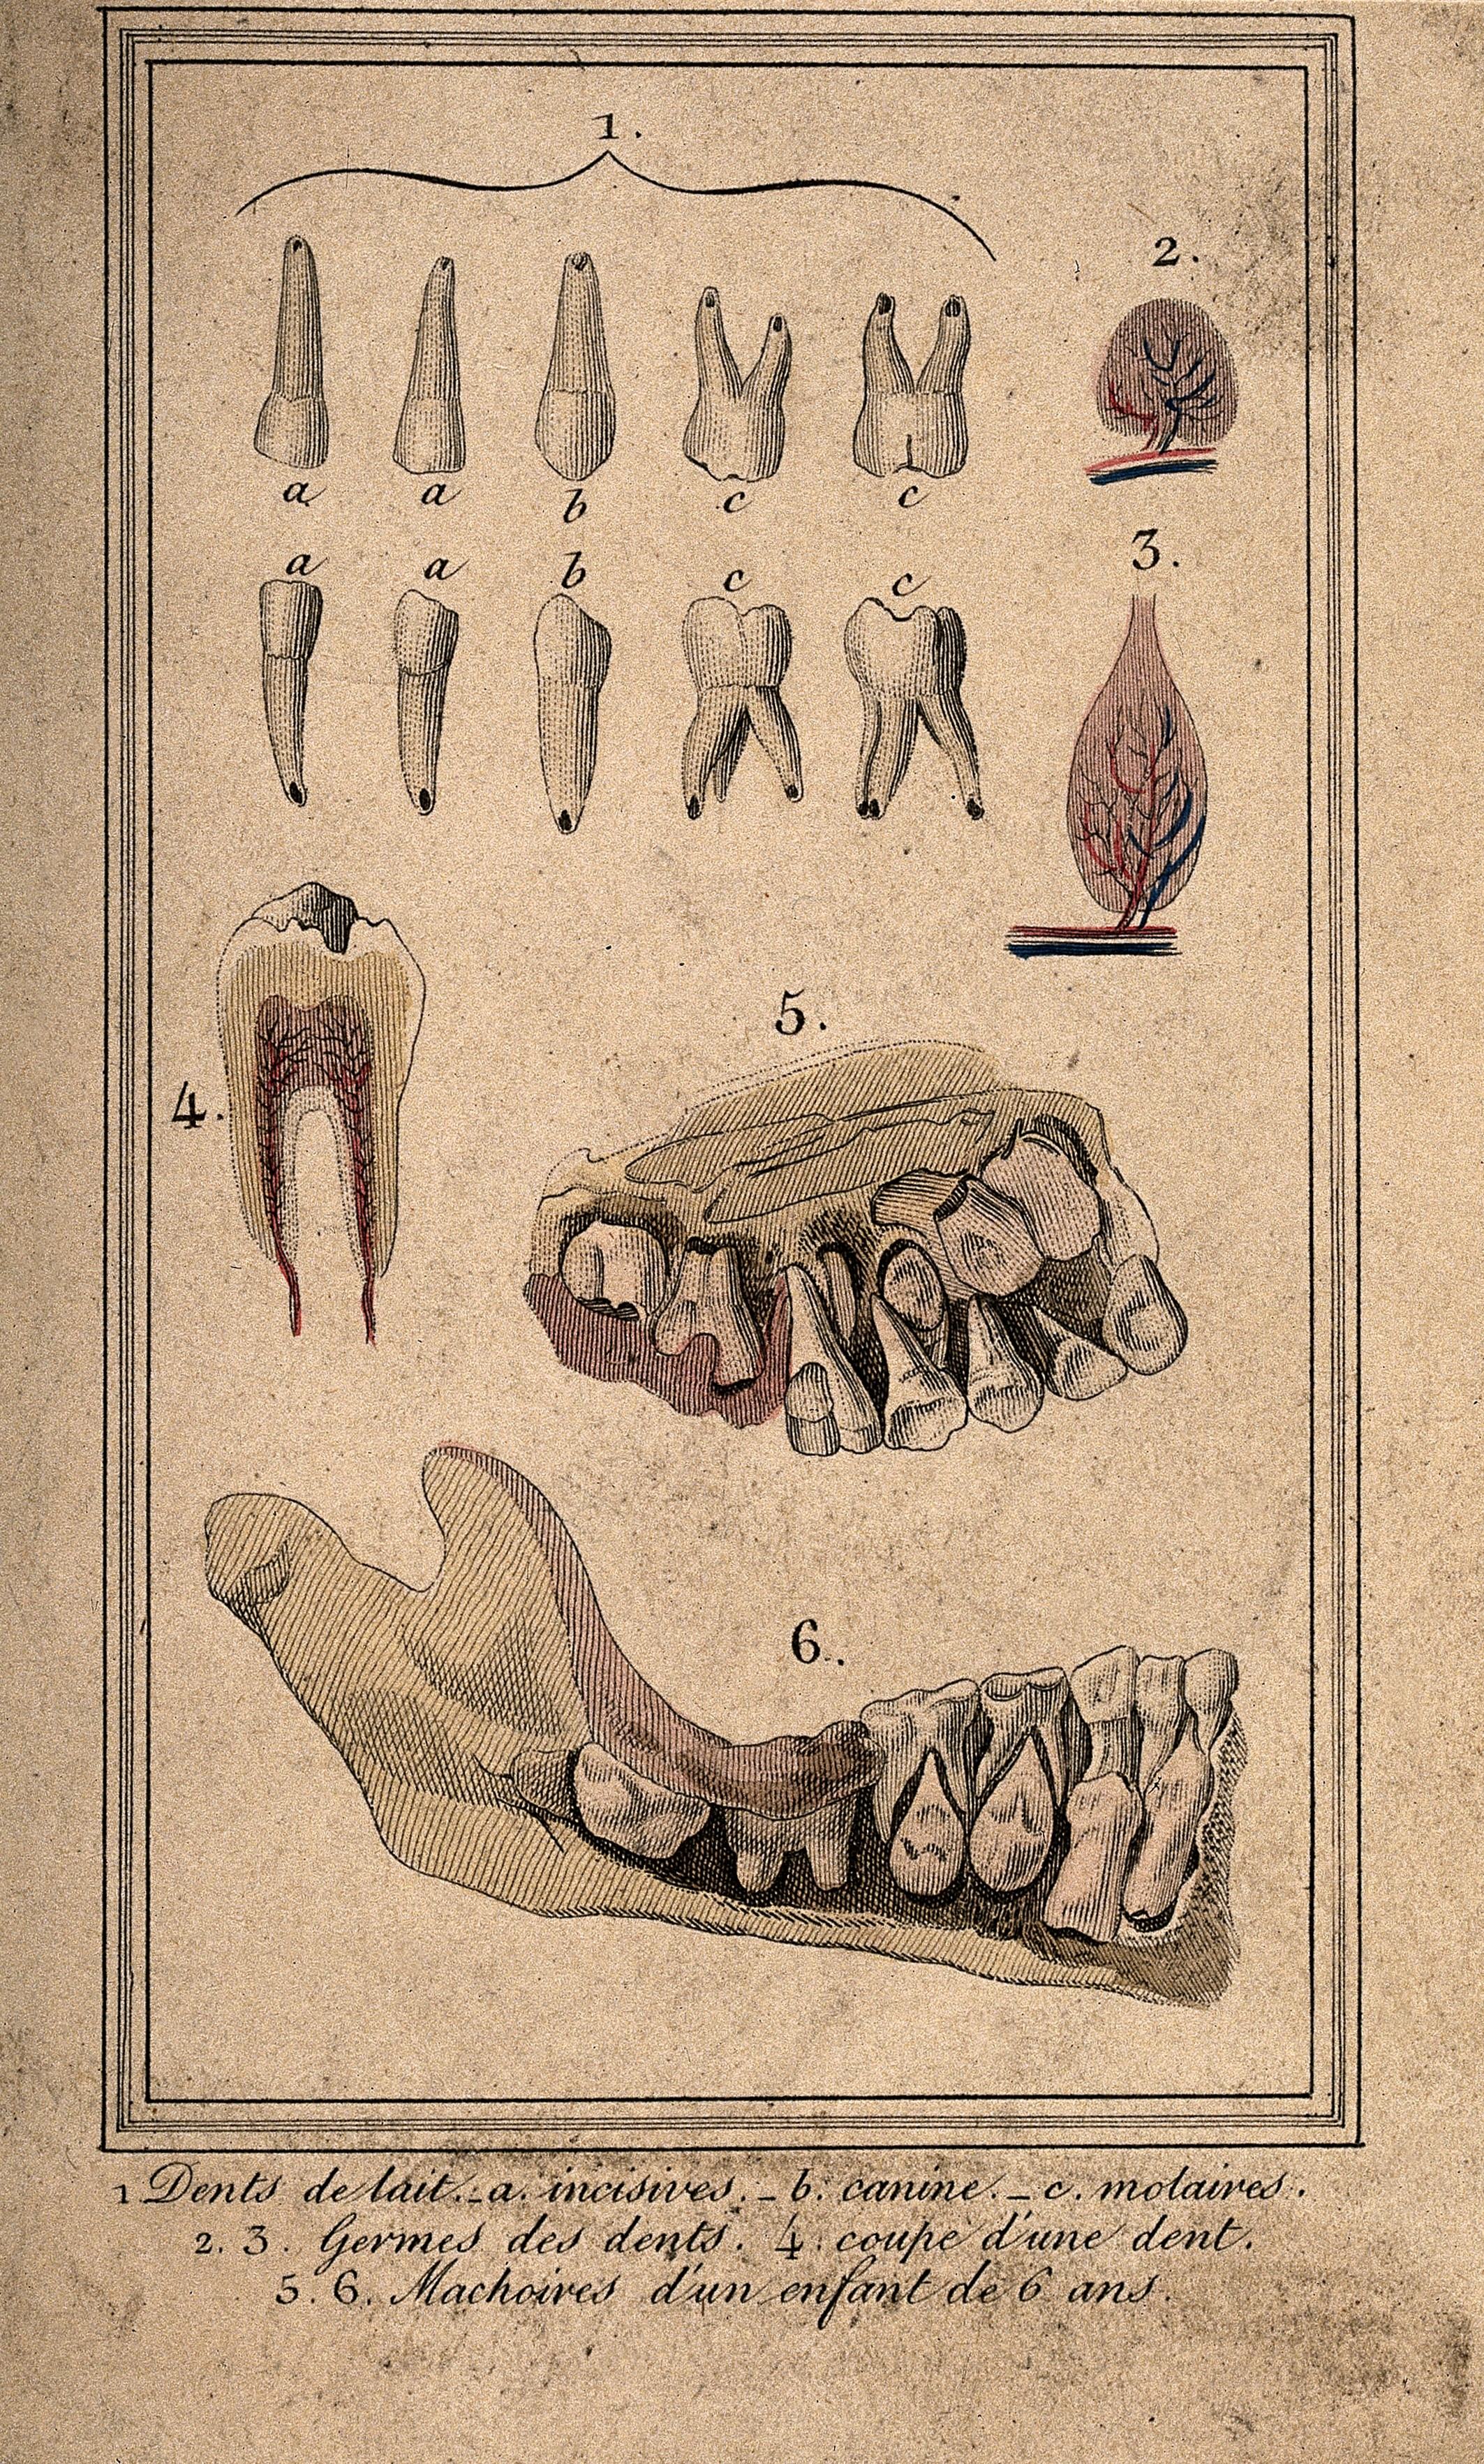 Filediagrams Of Incisors Canines And Molars A Diseased Tooth A